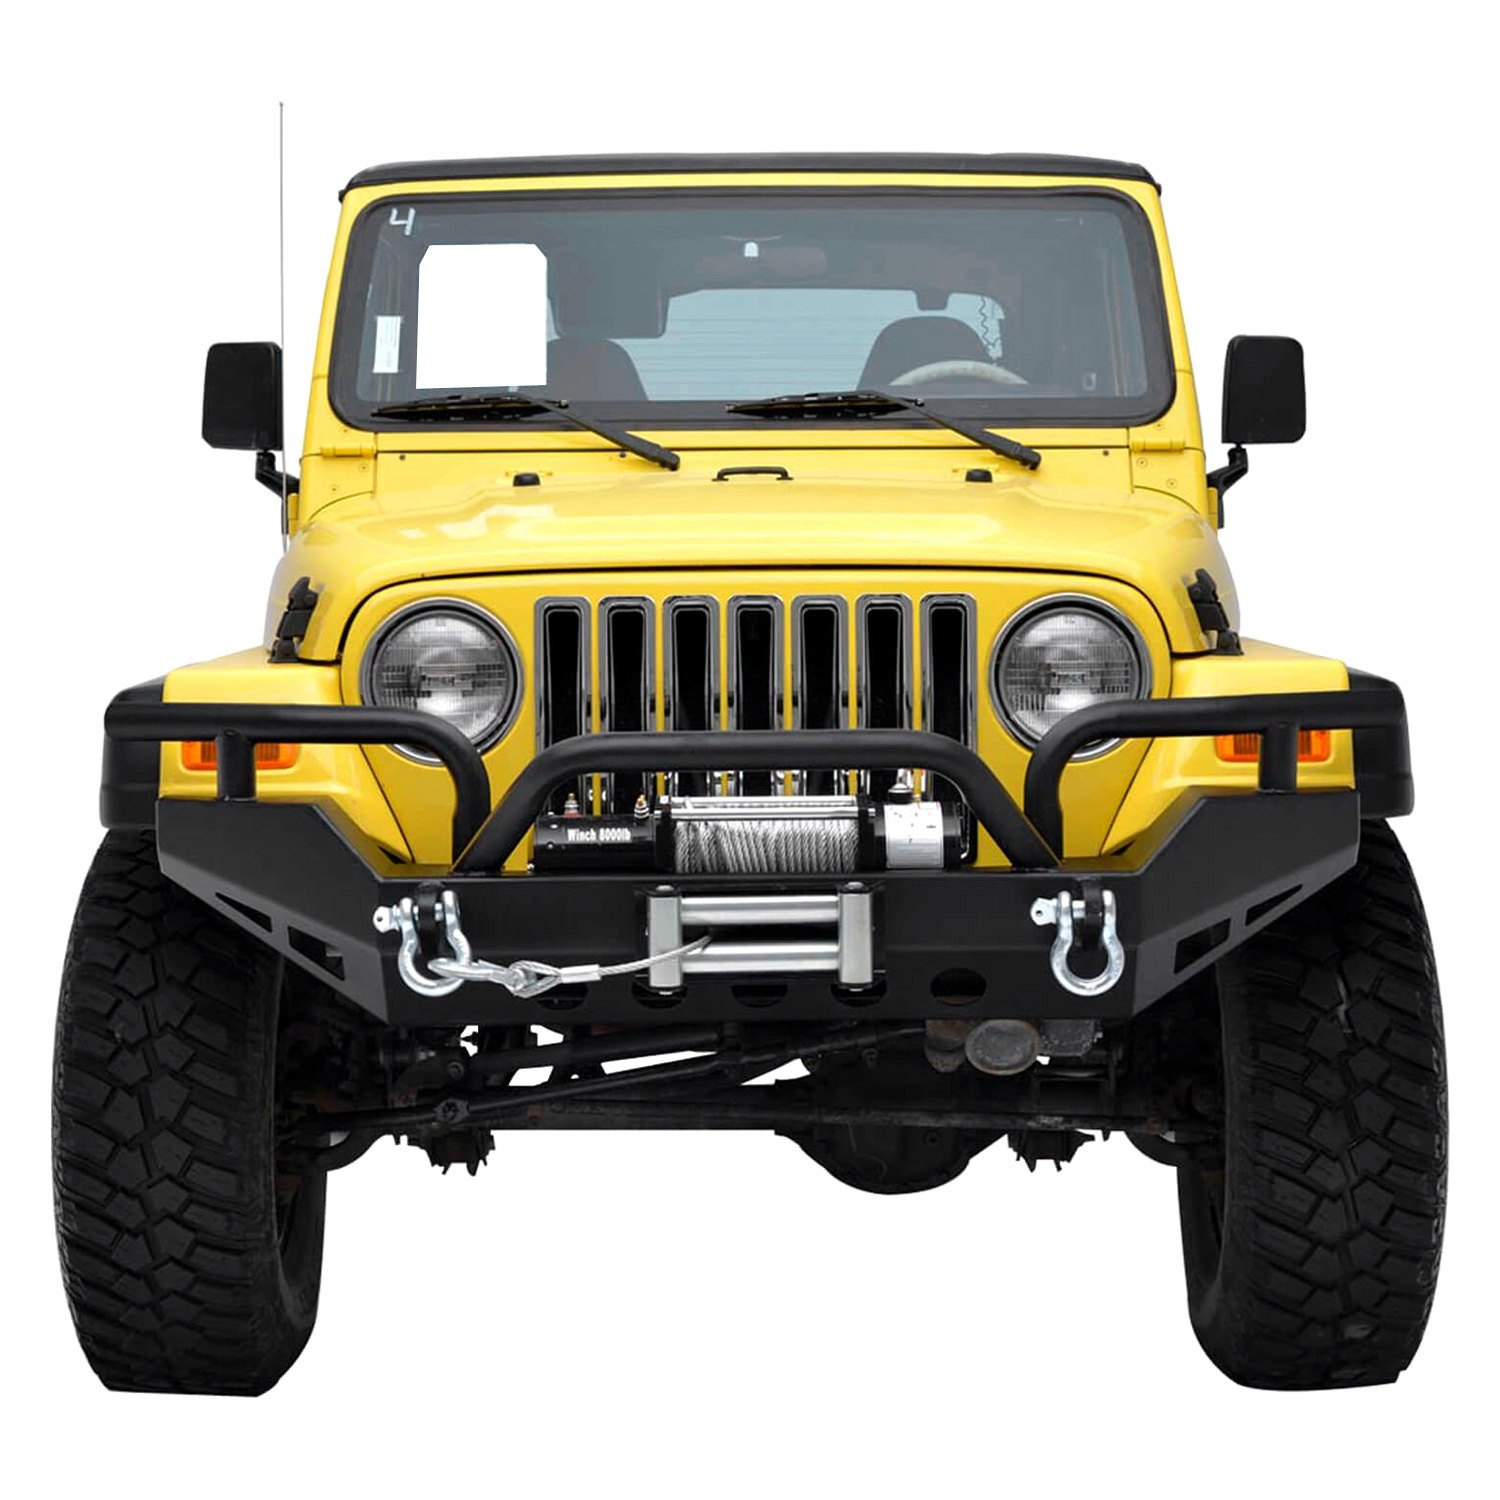 paramount jeep wrangler 2006 off road xtreme full width black front winch hd bumper. Black Bedroom Furniture Sets. Home Design Ideas